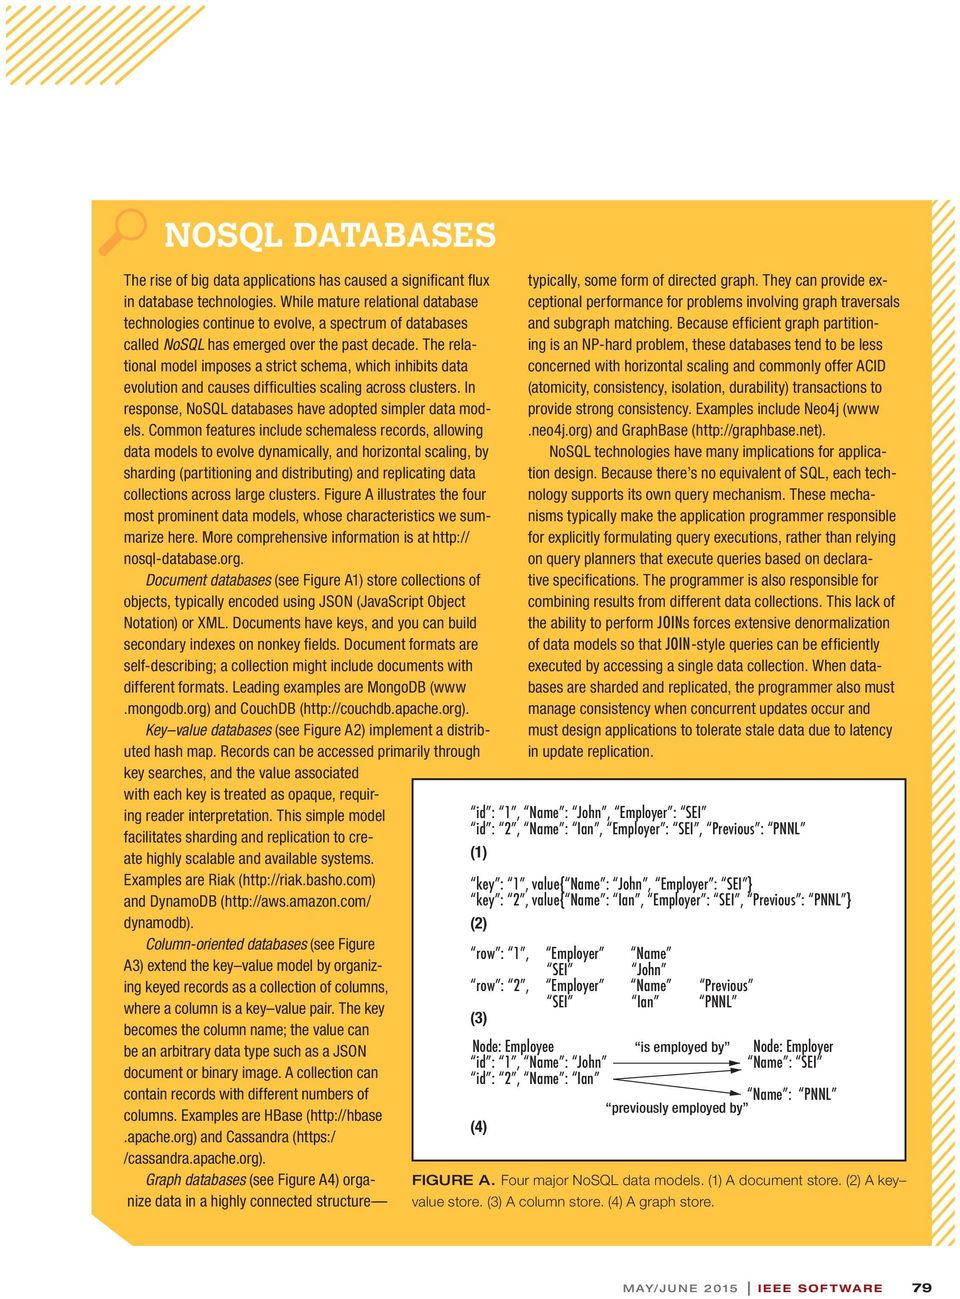 The relational model imposes a strict schema, which inhibits data evolution and causes diffi culties scaling across clusters. In response, NoSQL databases have adopted simpler data models.